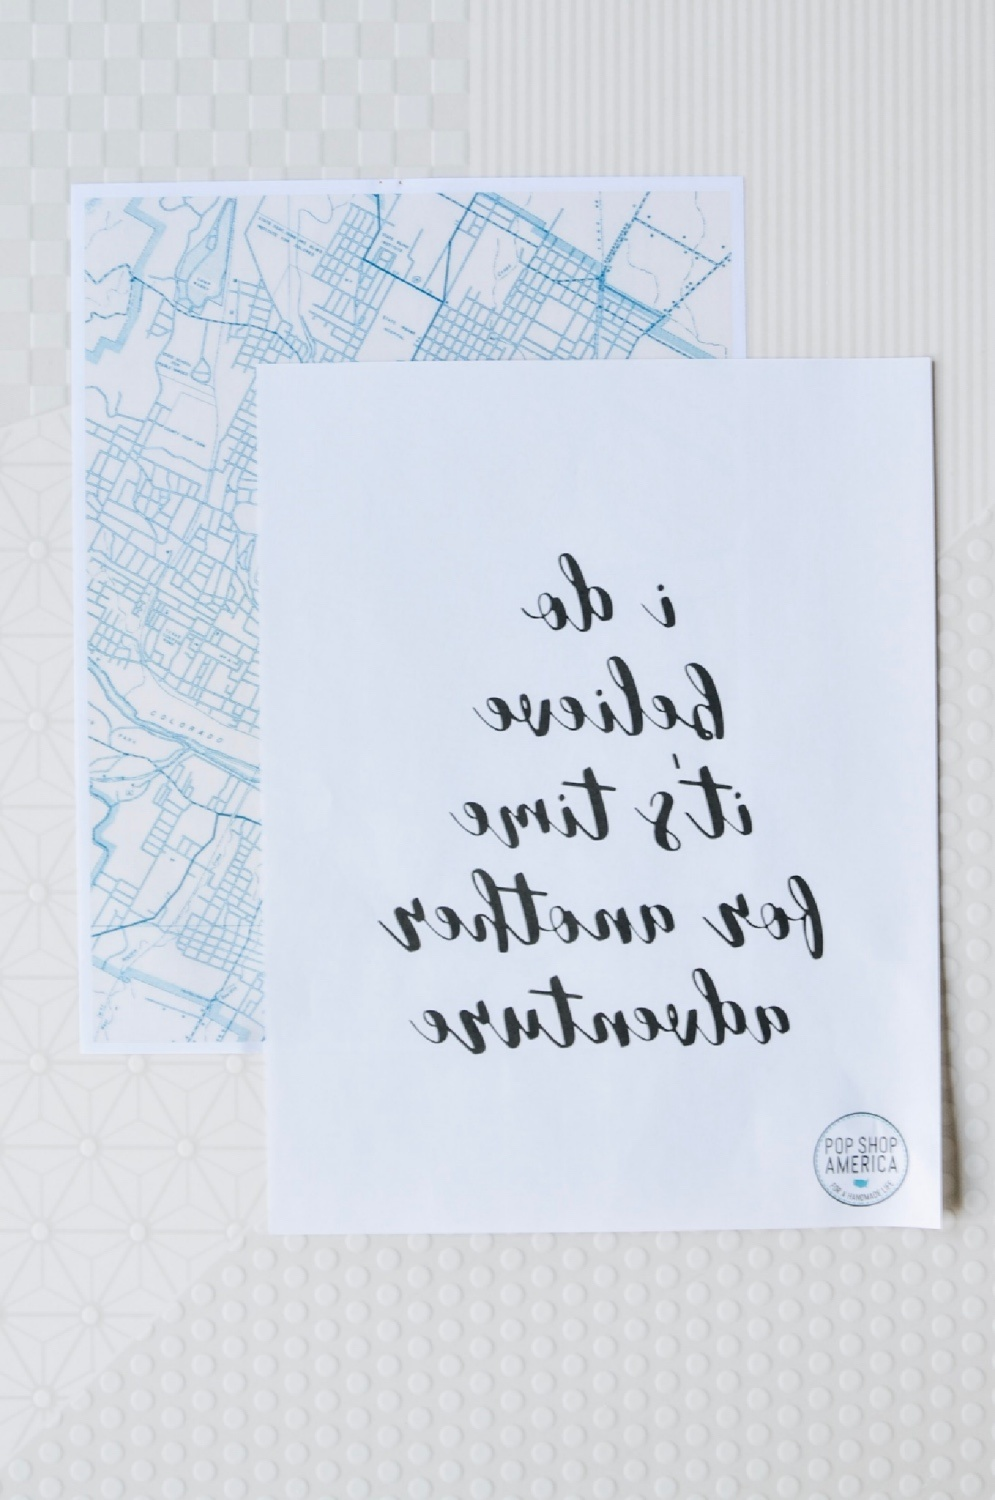 learn easy faux calligraphy with templates pop shop america